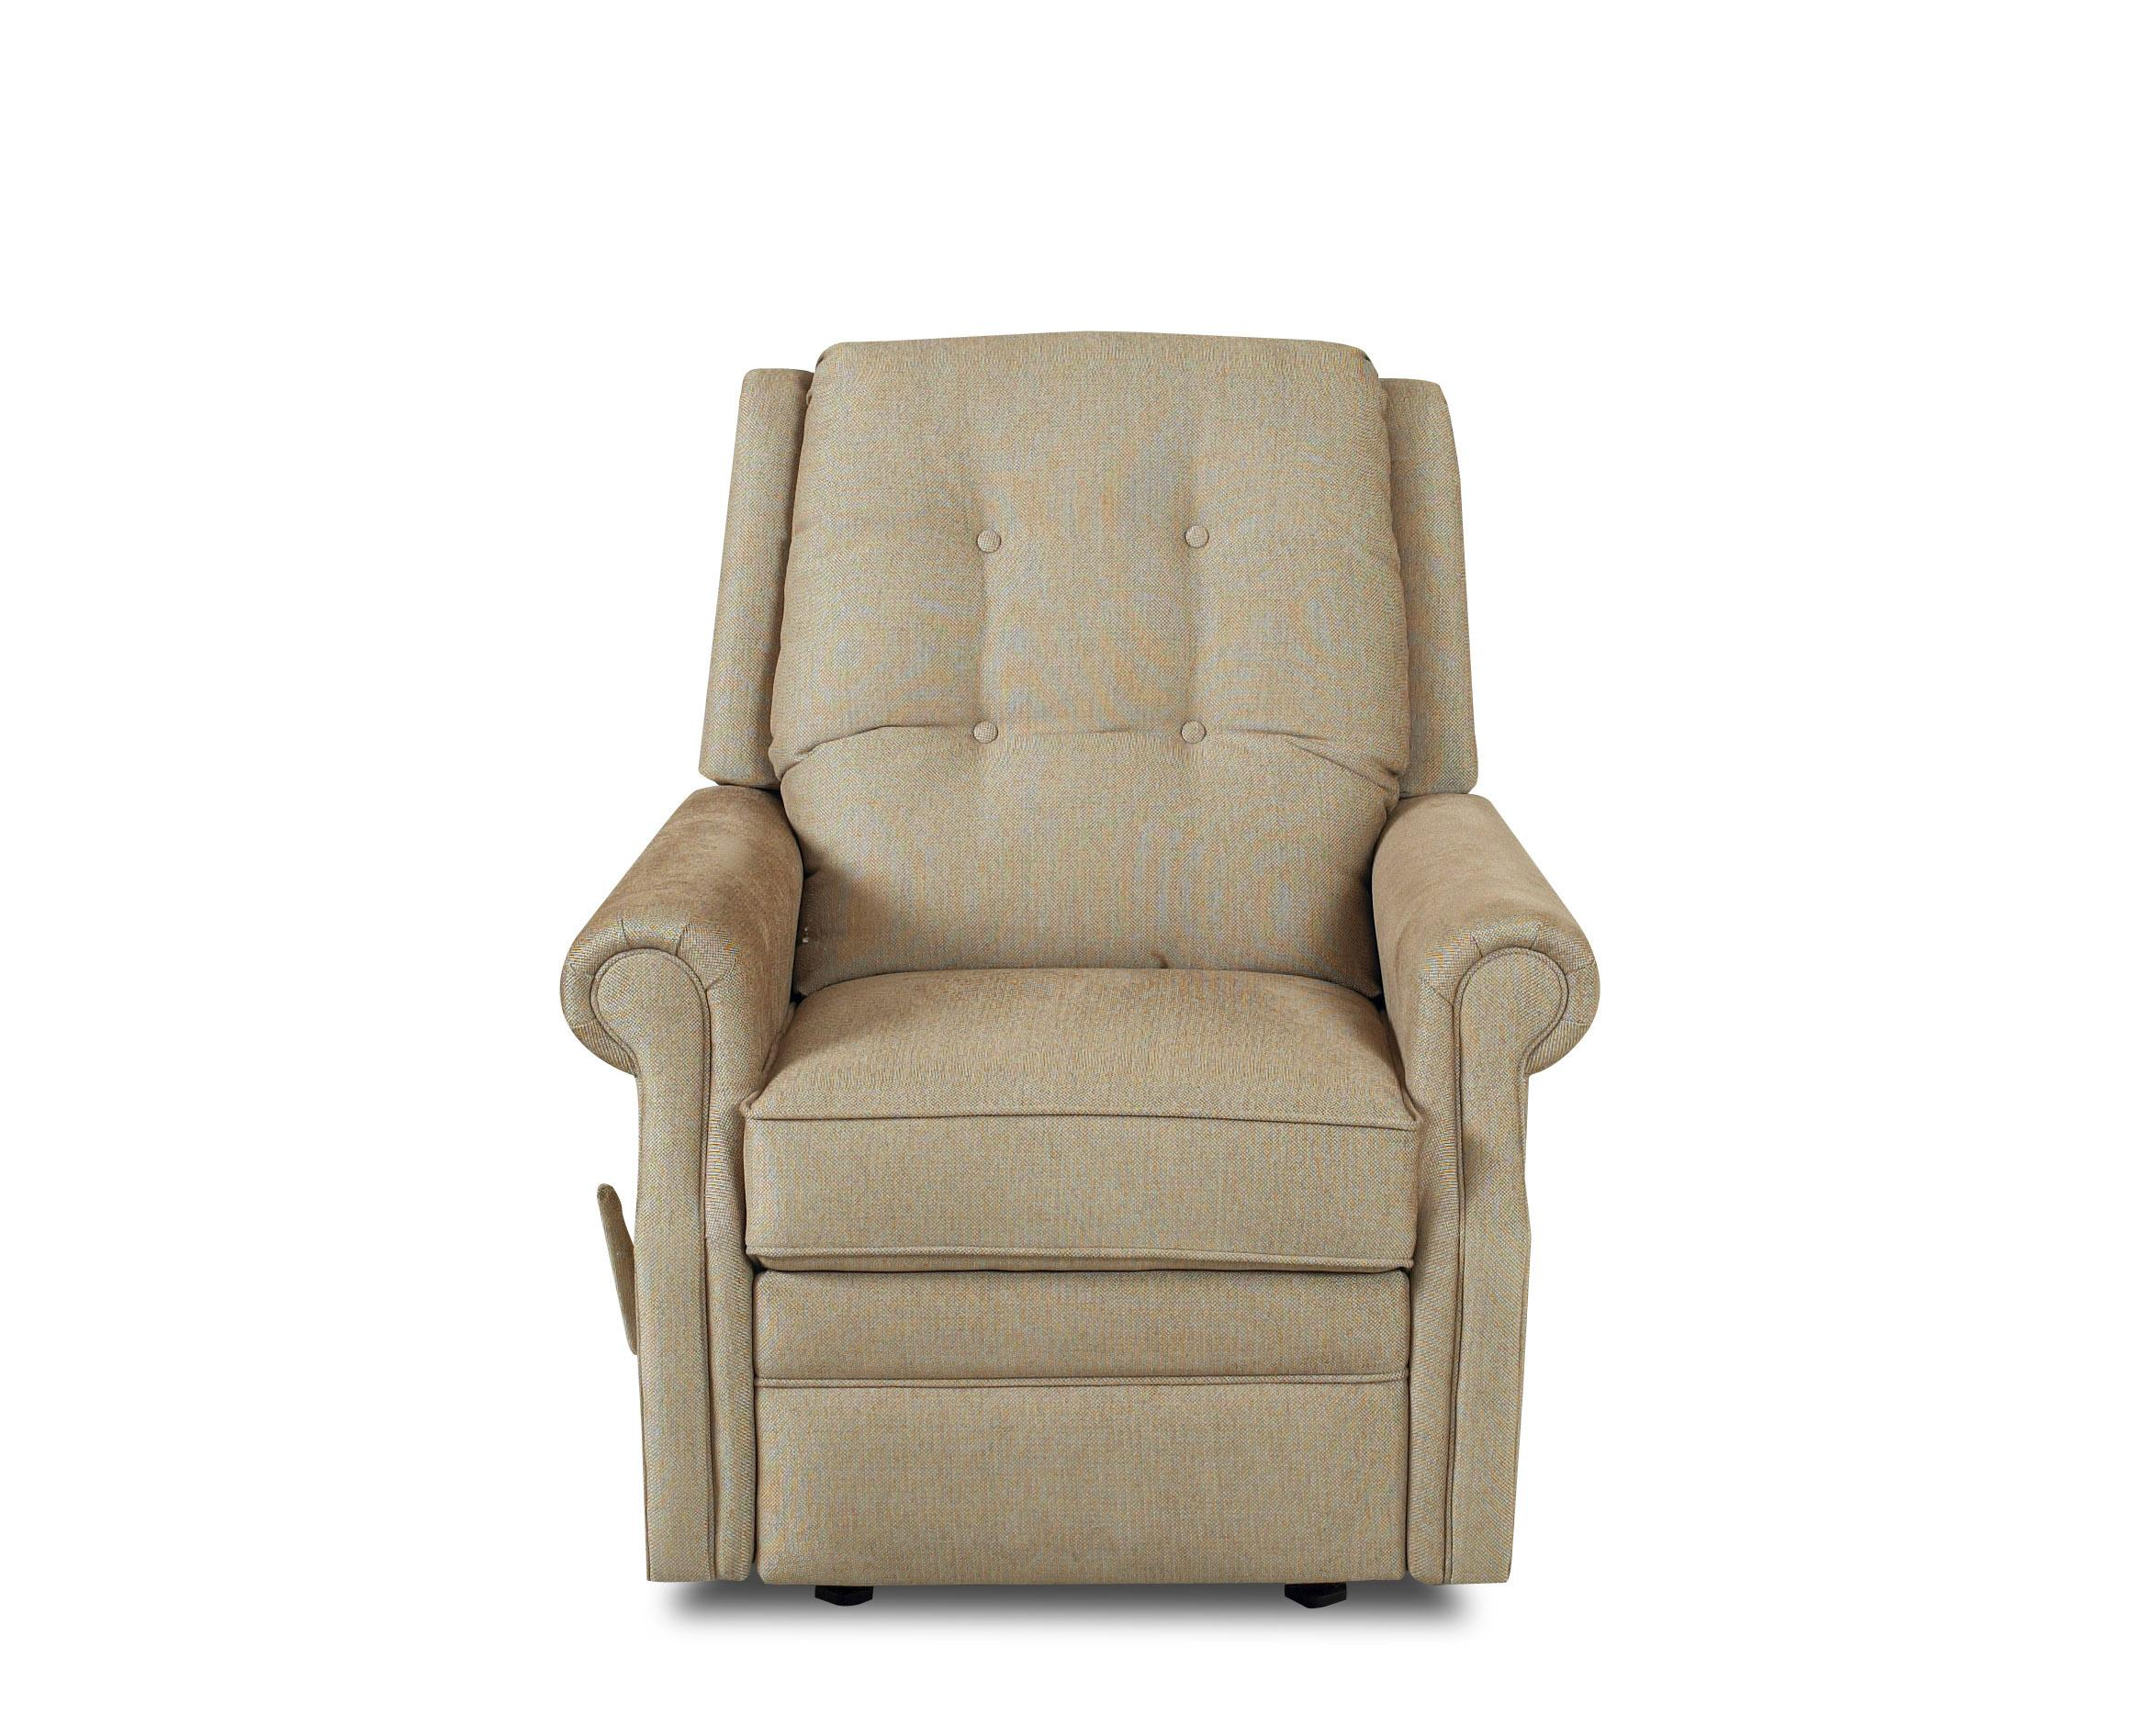 swivel chair national bookstore skirted parsons chairs dining room furniture transitional manual rocking reclining with